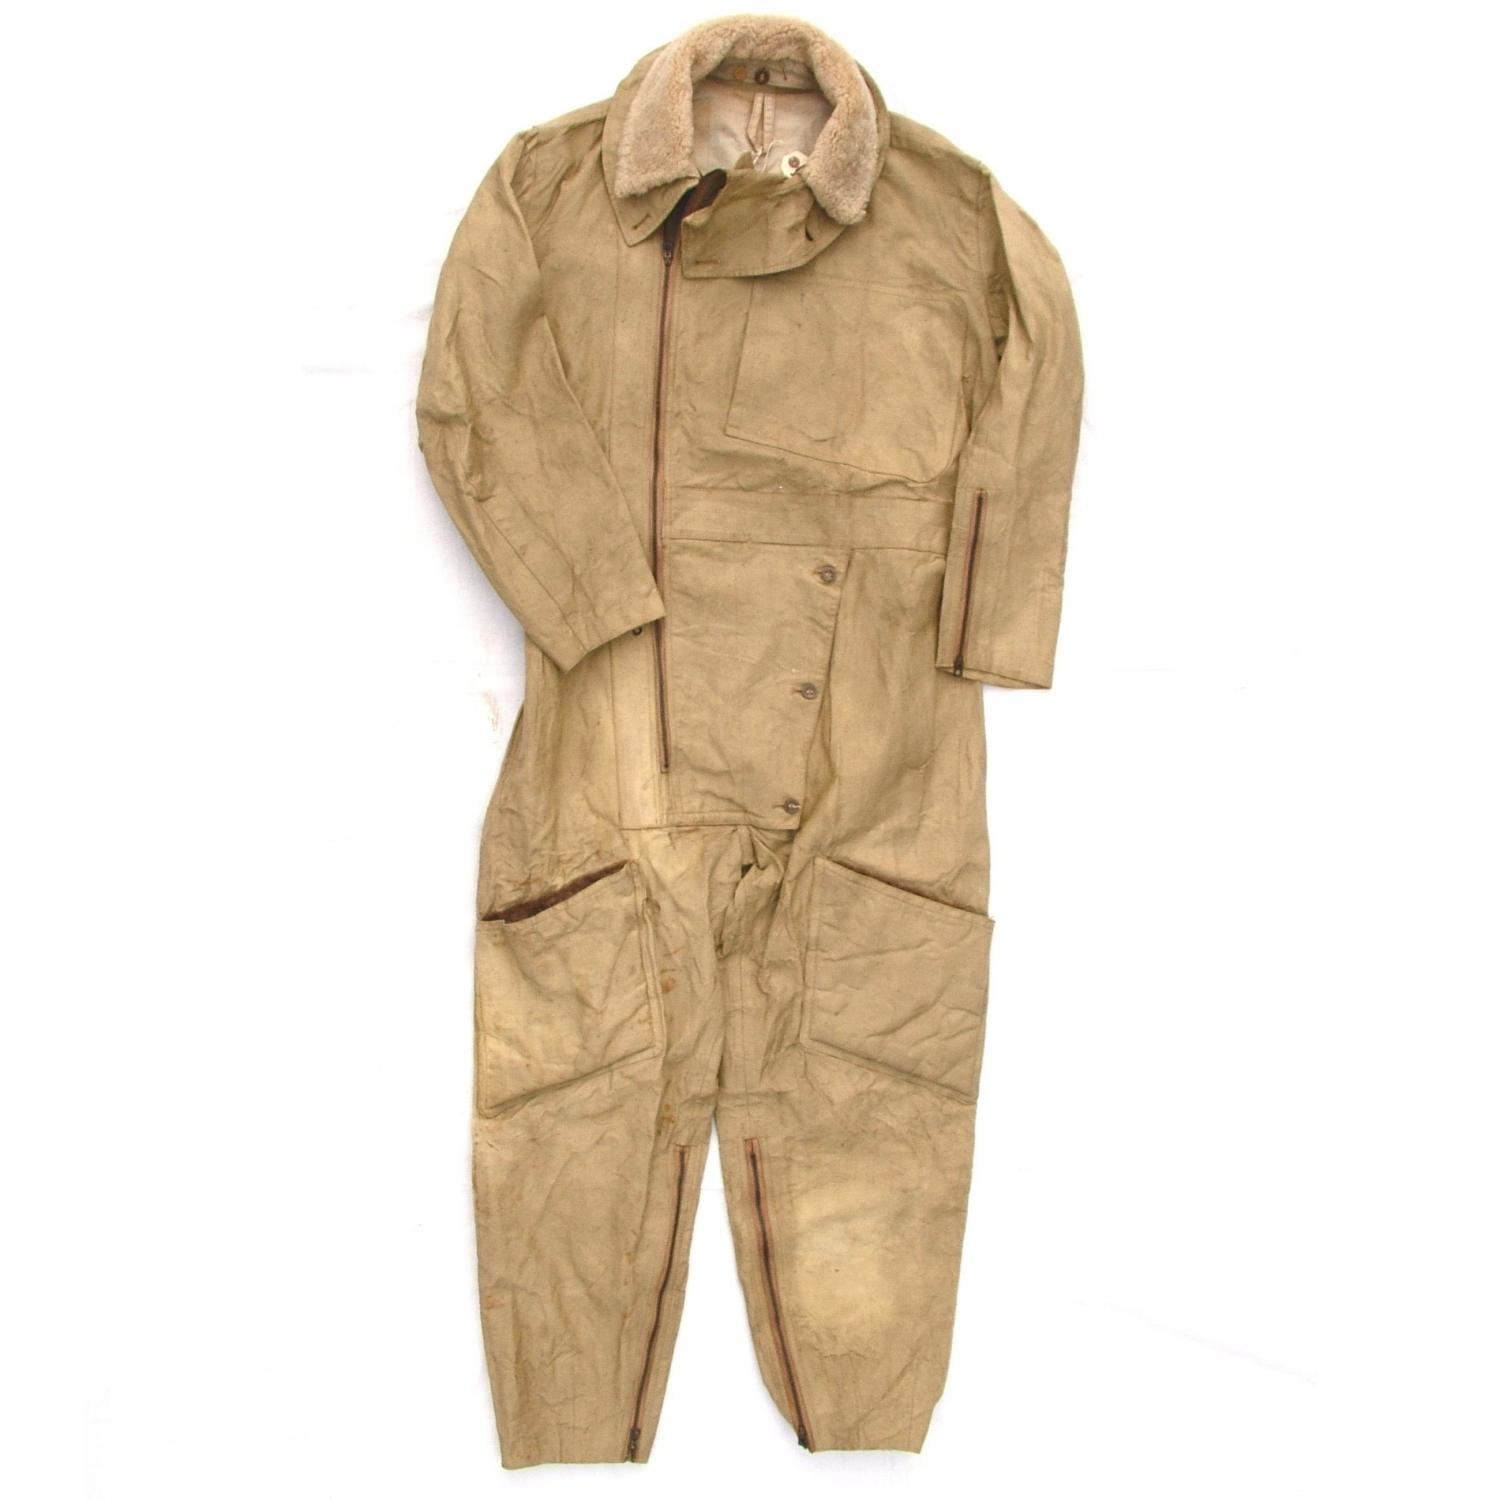 RAAF 1930 Pattern Flying Suit